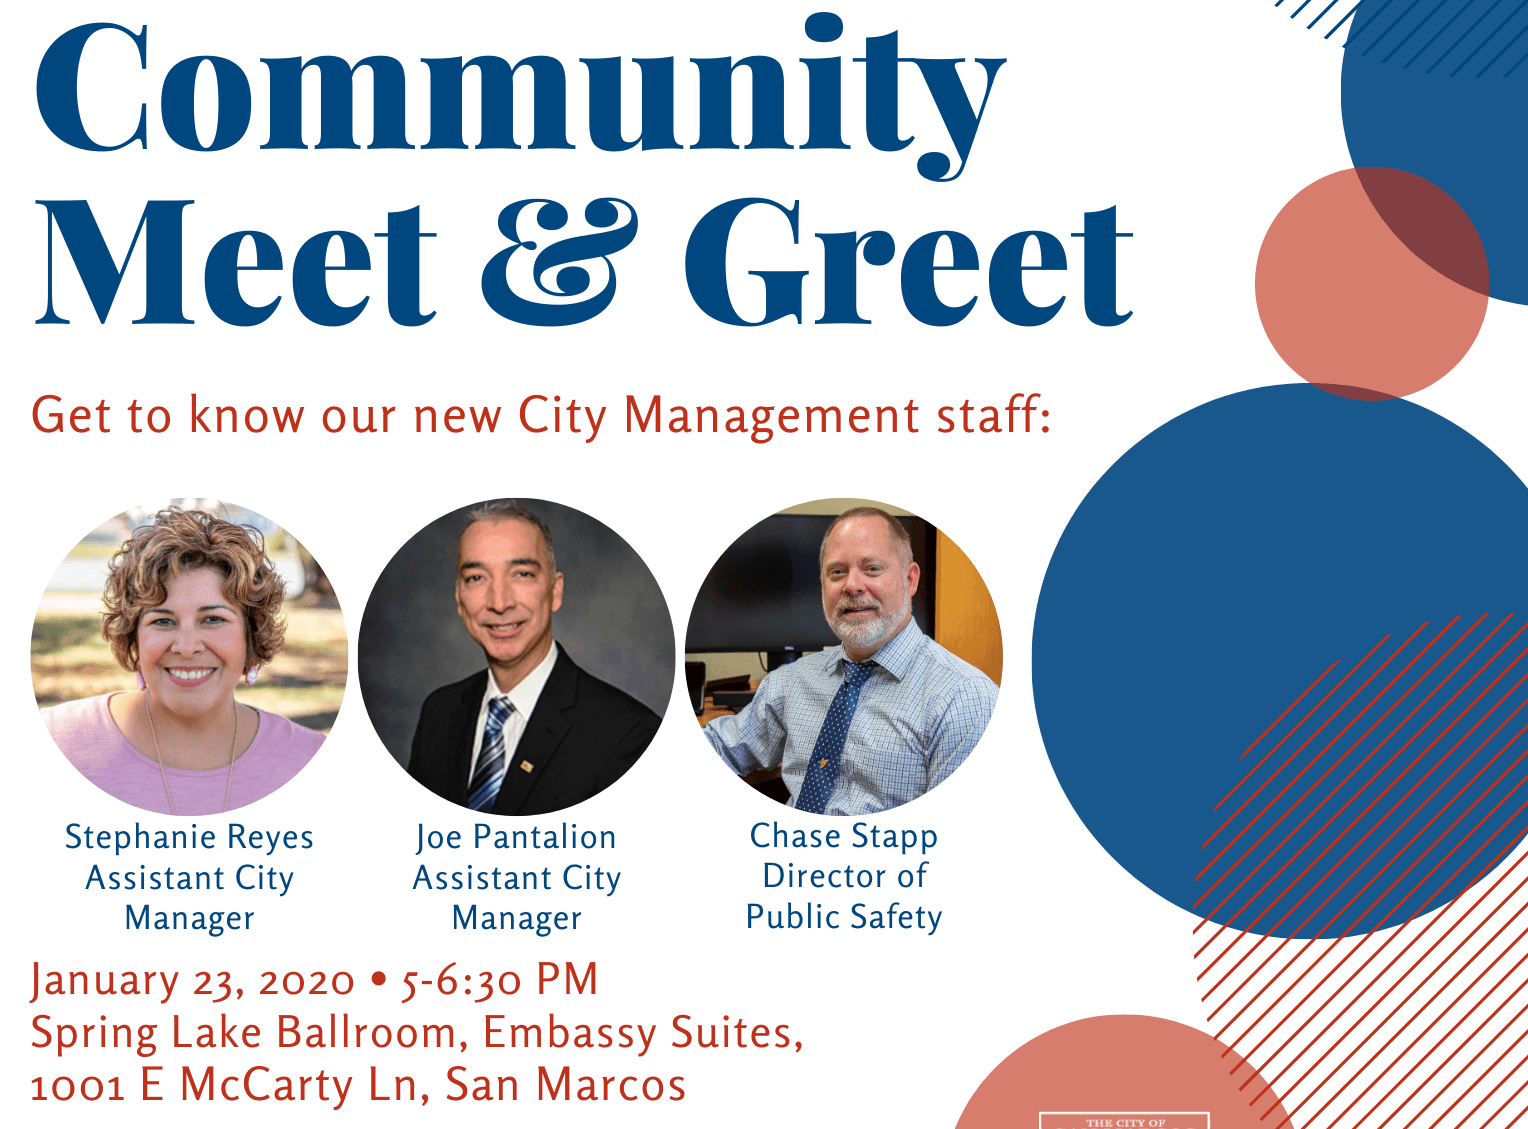 Community Meet and Greet Graphic